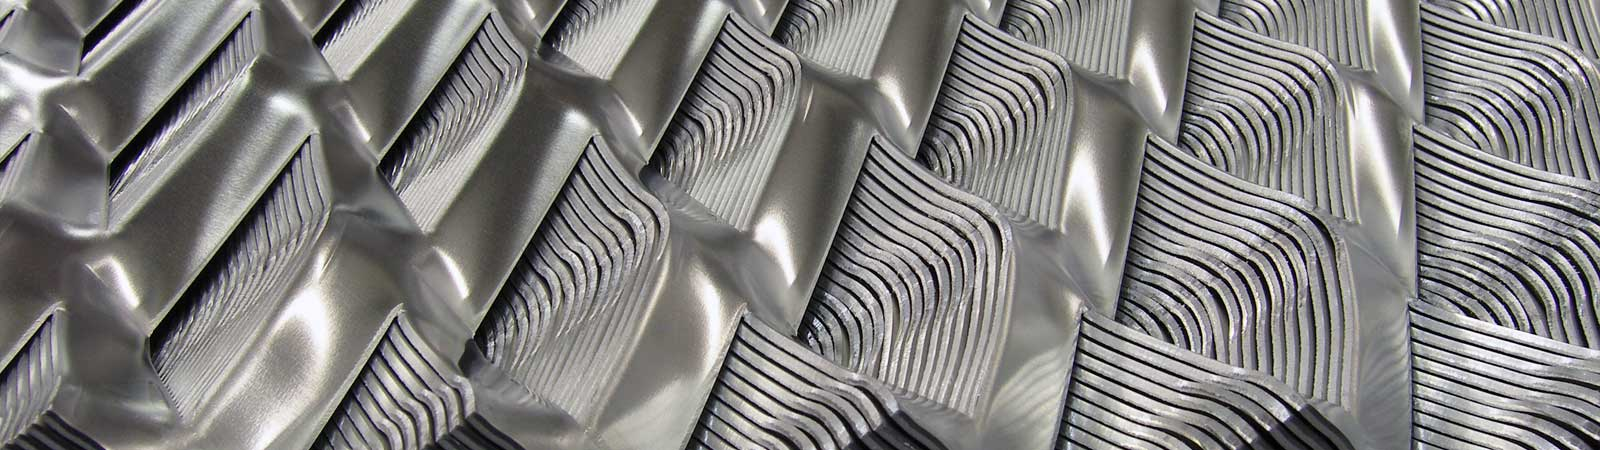 Aluminium streched metal sheets